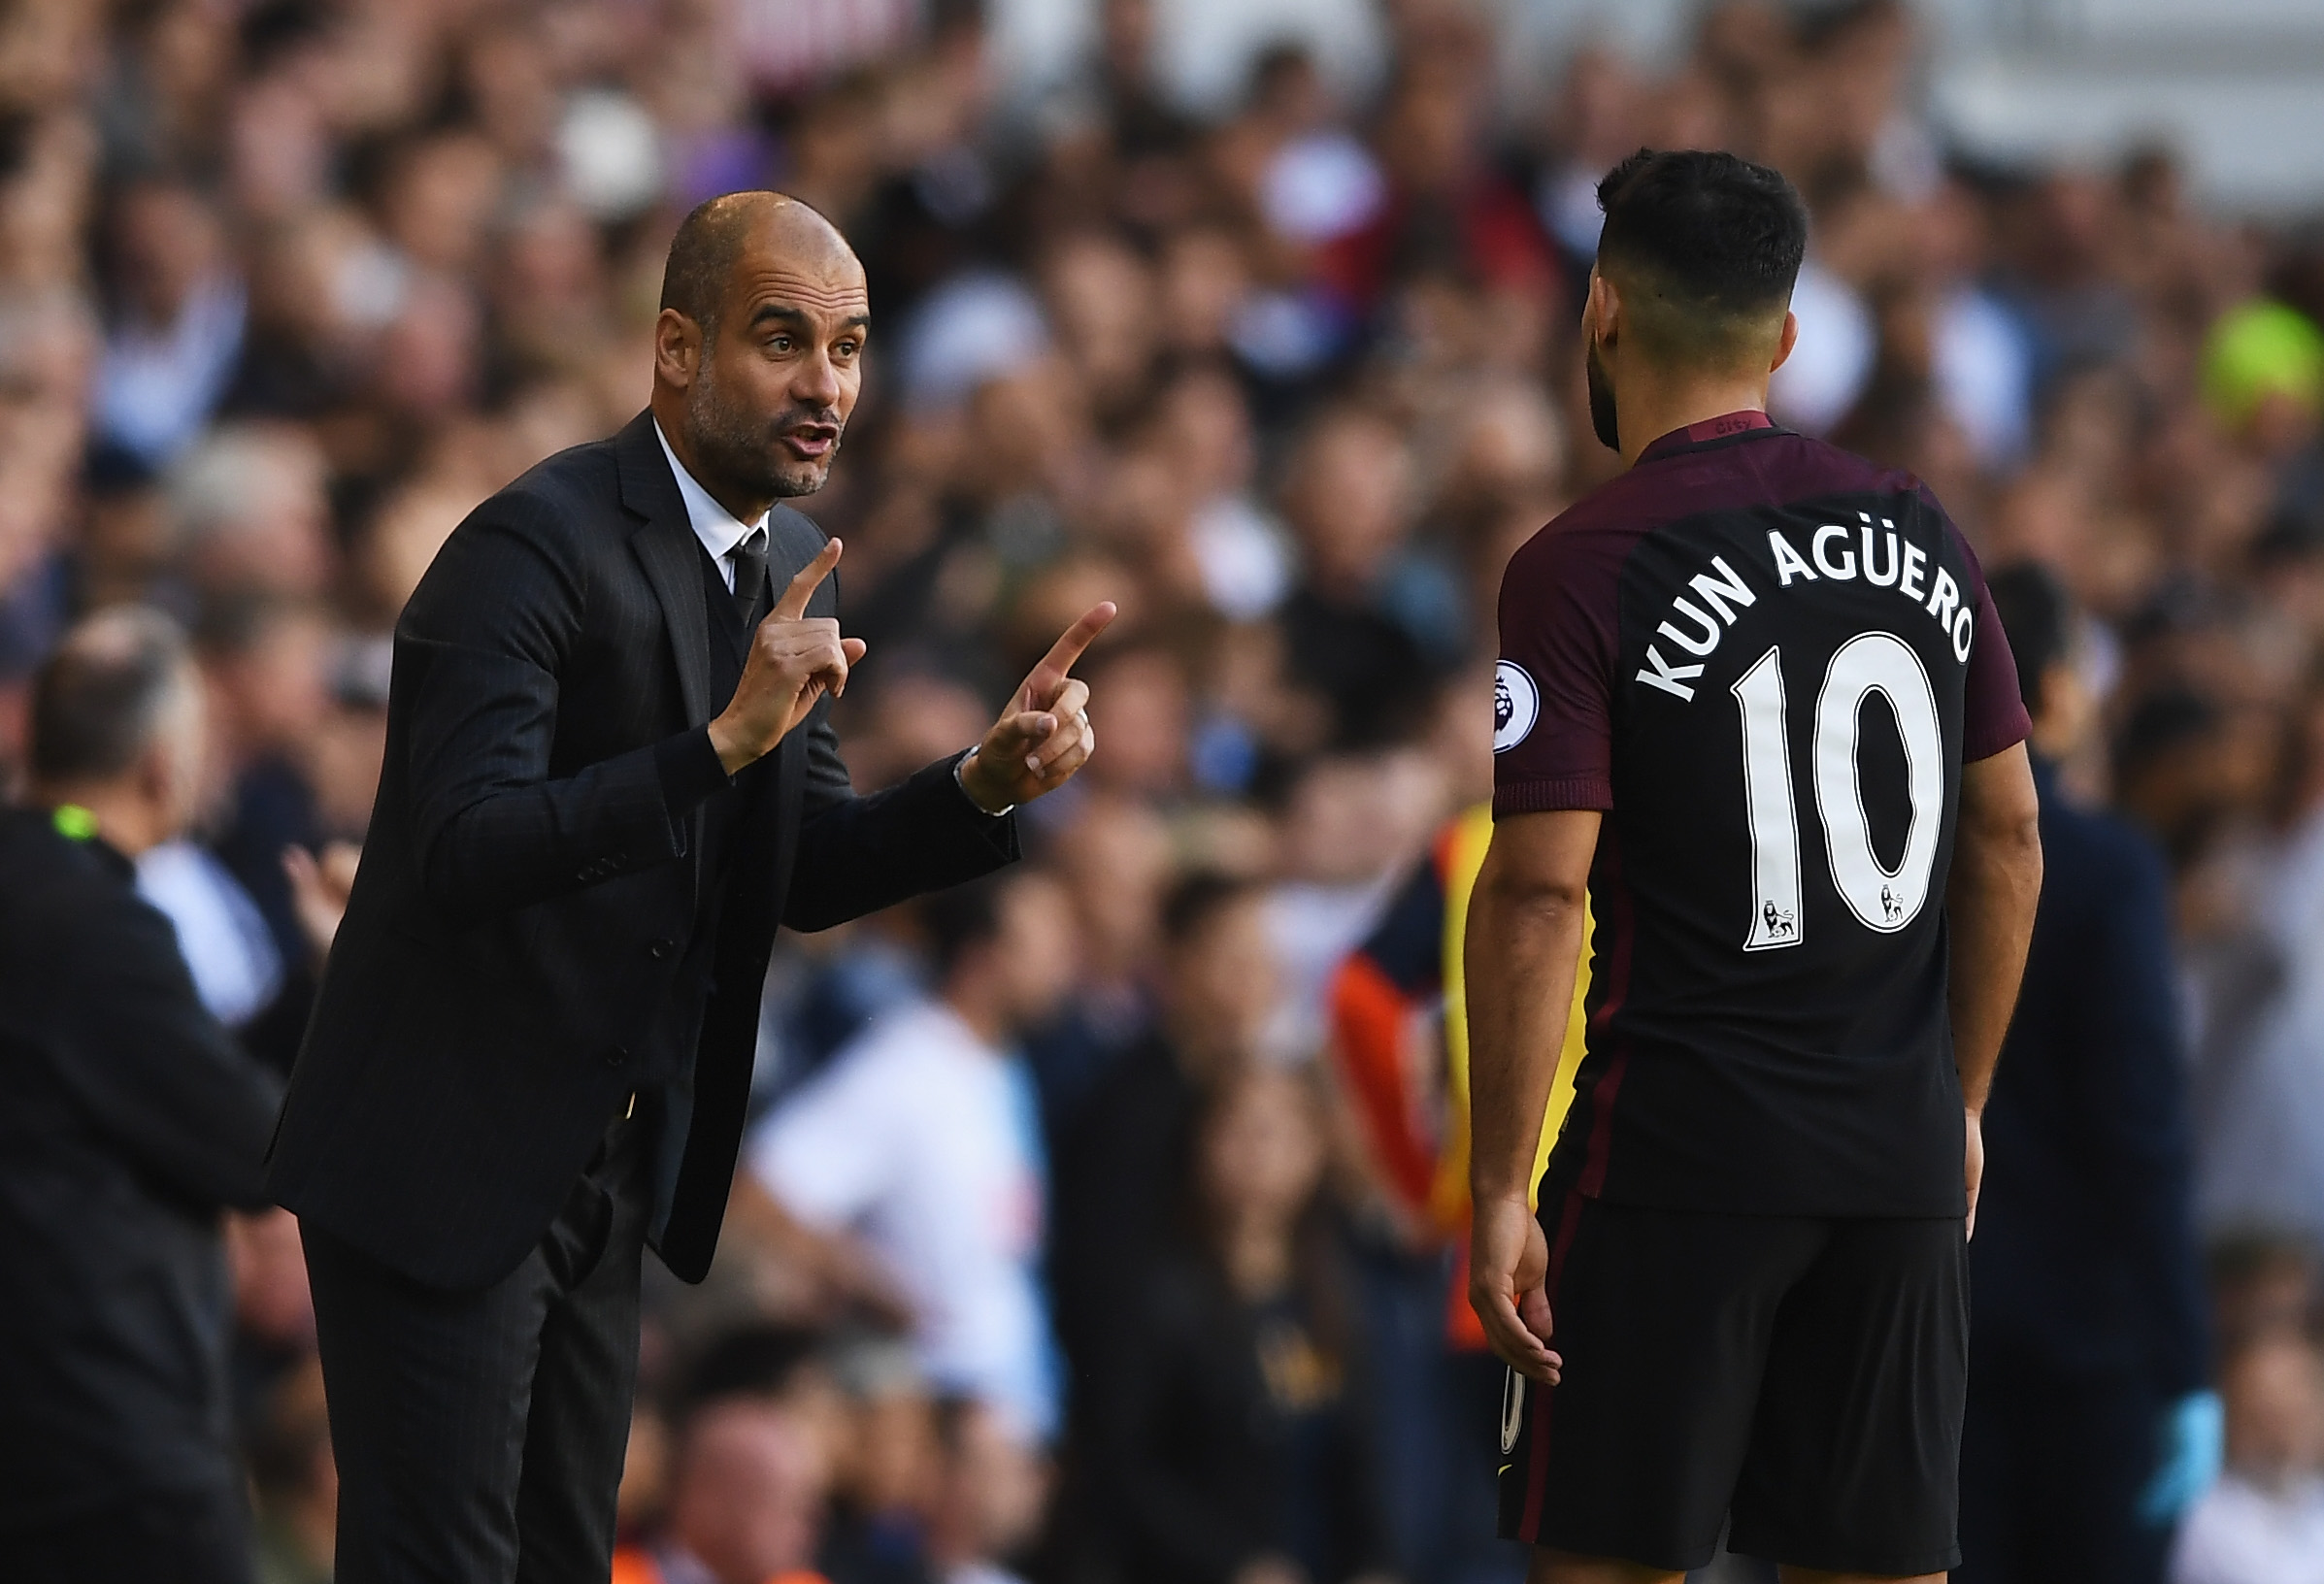 LONDON, ENGLAND - OCTOBER 02: Josep Guardiola, Manager of Manchester City (L) gives Sergio Aguero of Manchester City (R) instructions during the Premier League match between Tottenham Hotspur and Manchester City at White Hart Lane on October 2, 2016 in London, England. (Photo by Shaun Botterill/Getty Images)